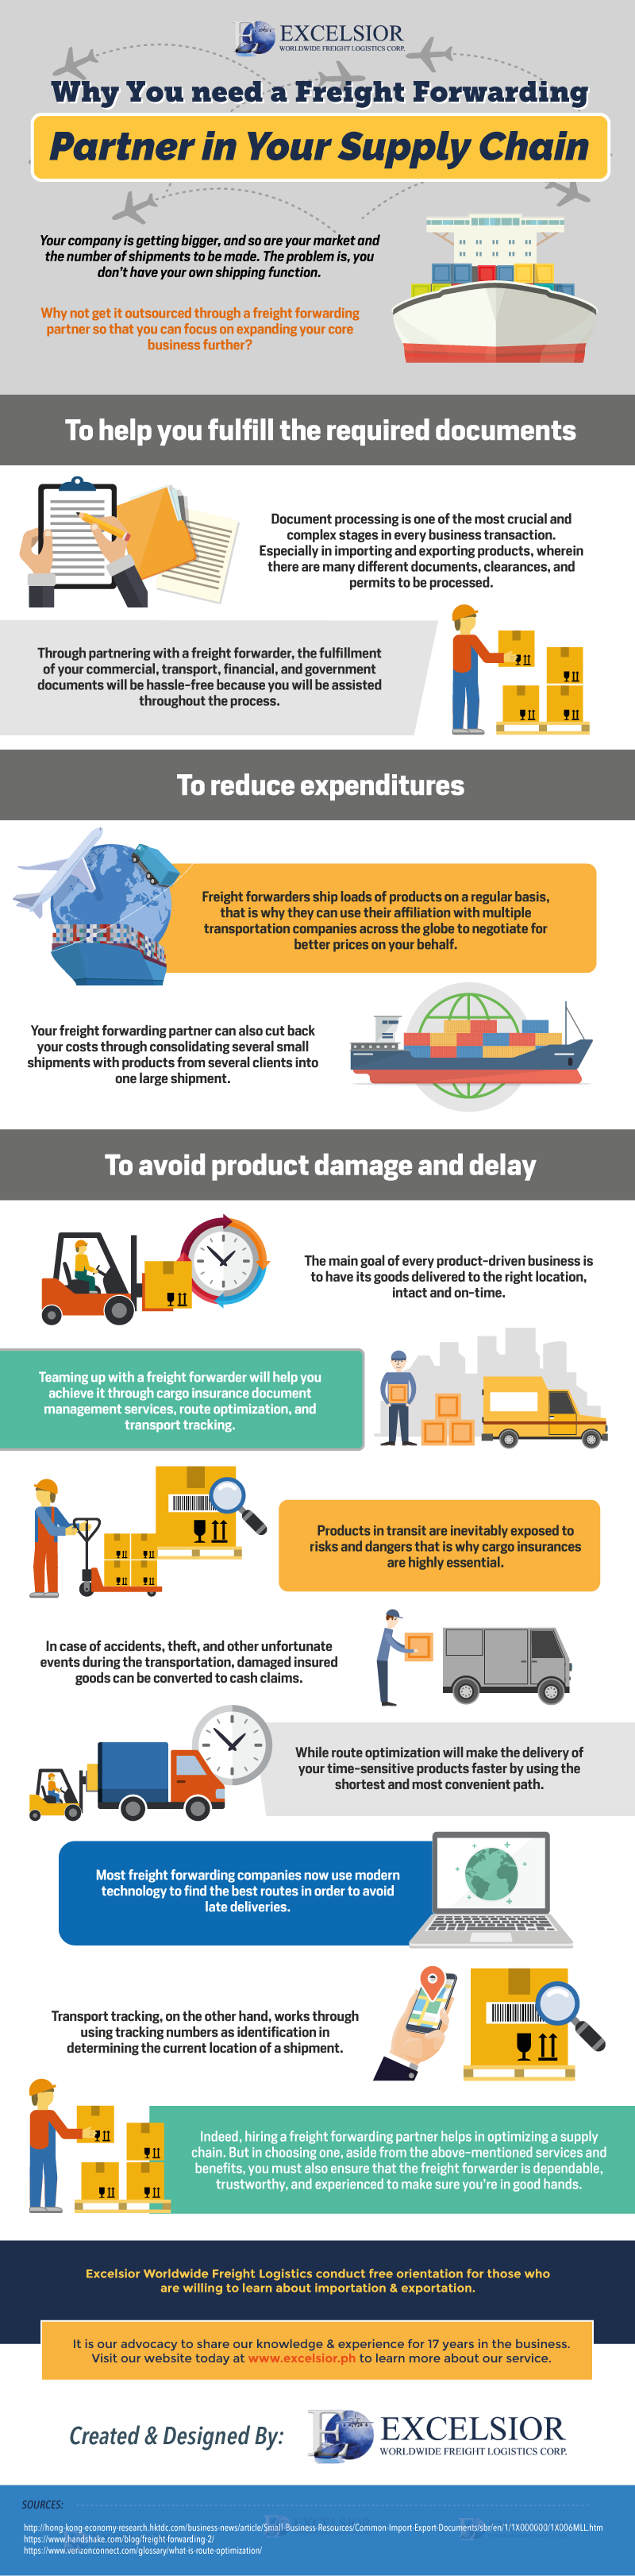 Why-You-need-a-Freight-Forwarding-Partner-in-Your-Supply-Chain